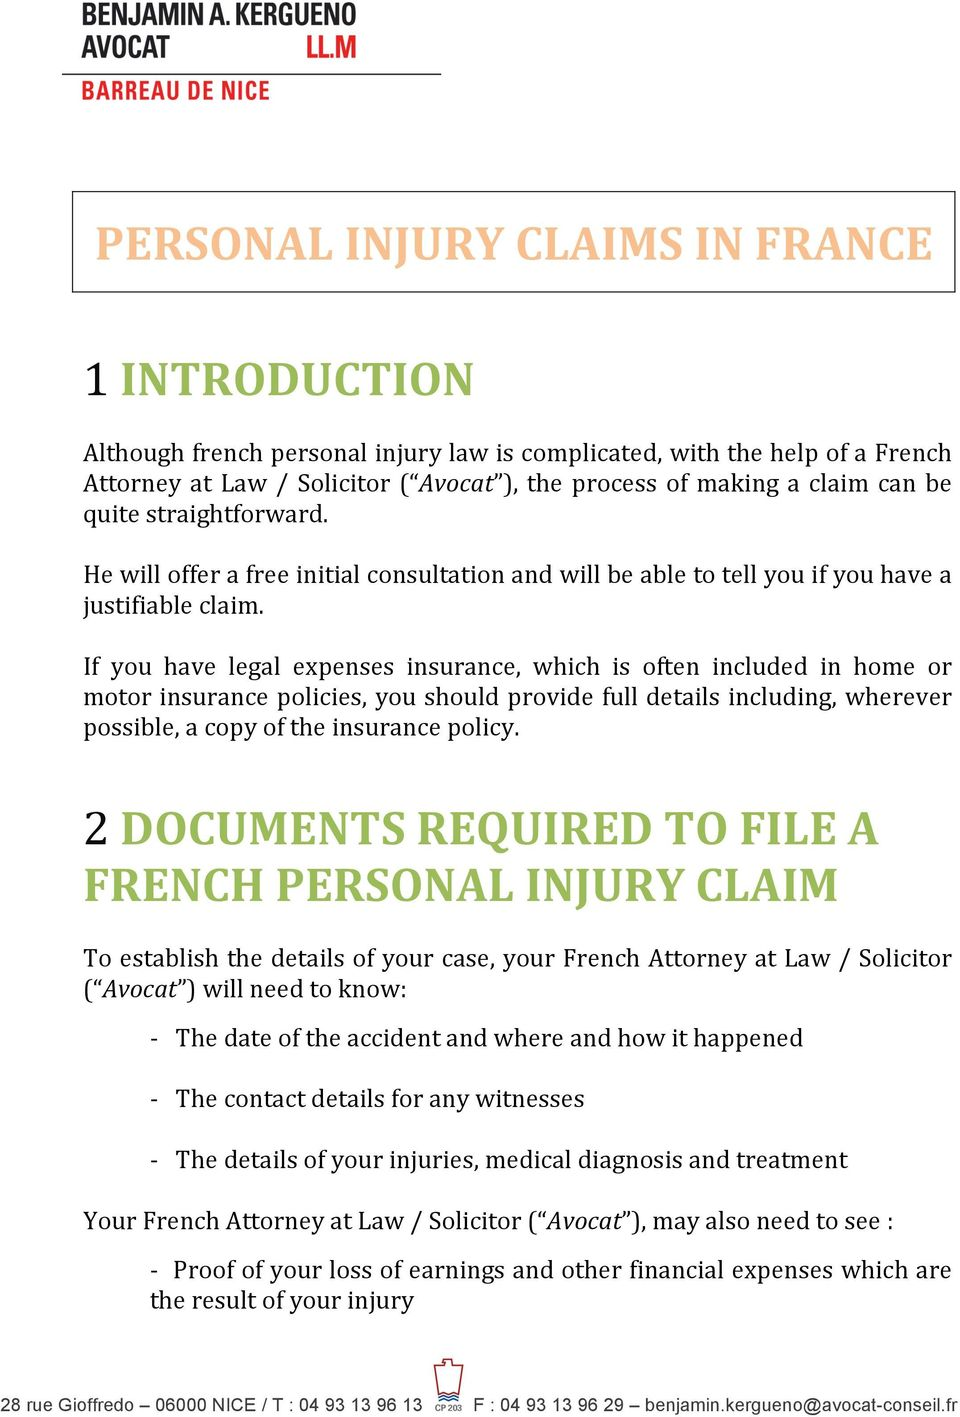 If you have legal expenses insurance, which is often included in home or motor insurance policies, you should provide full details including, wherever possible, a copy of the insurance policy.